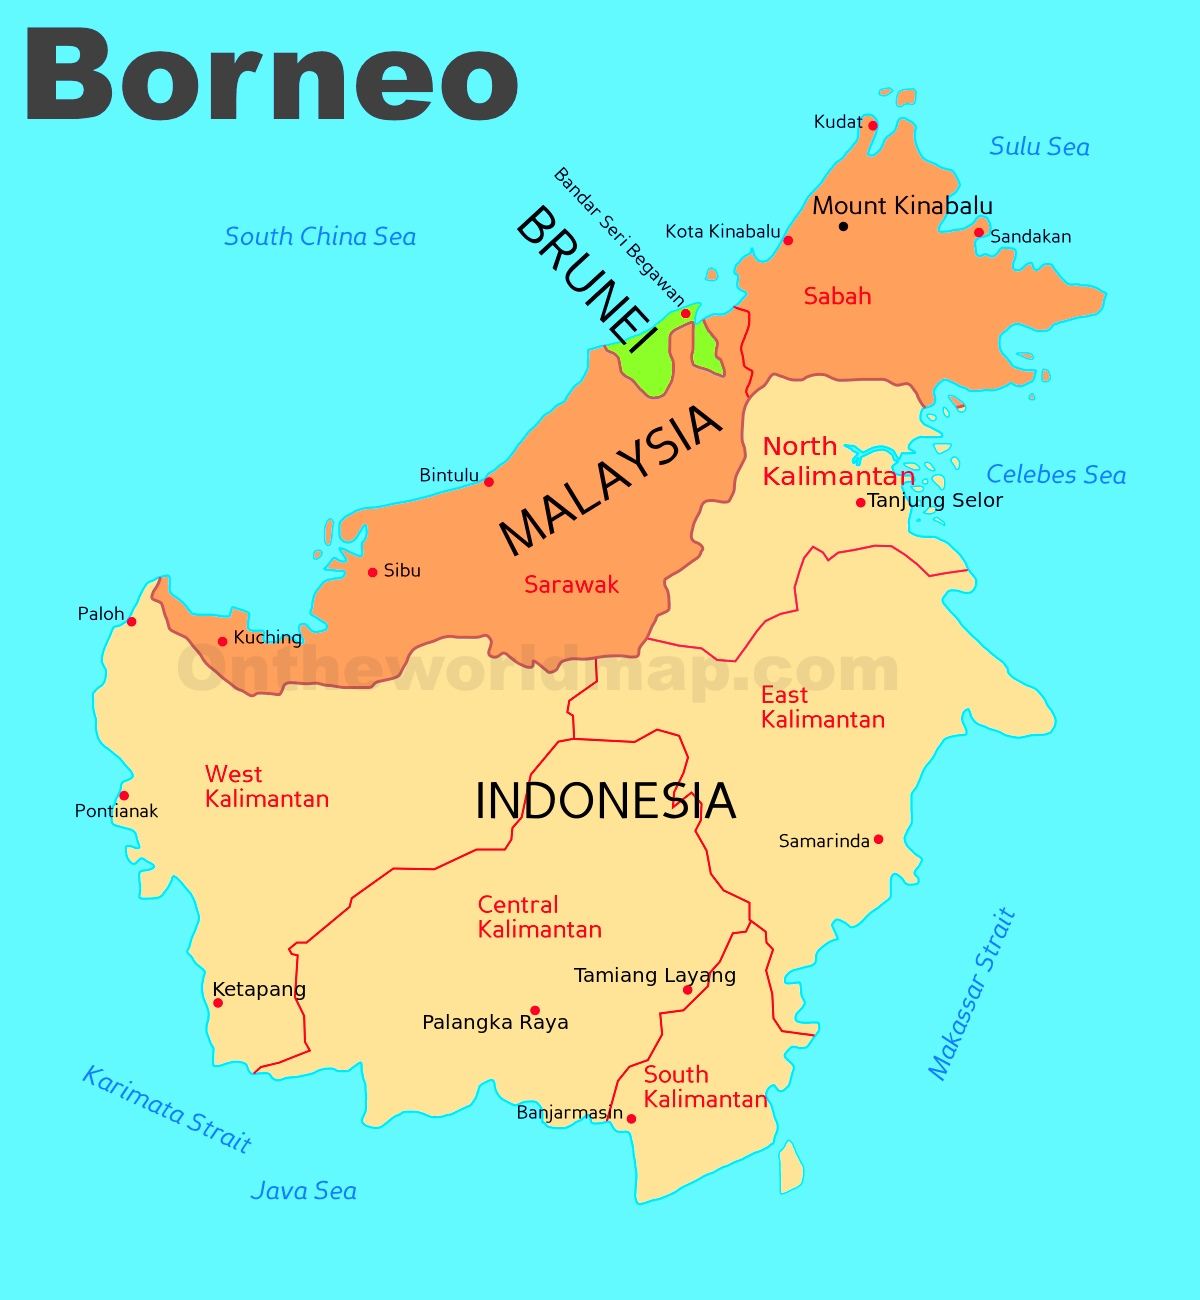 Borneo Maps Indonesia Maps of Borneo Island Kalimantan